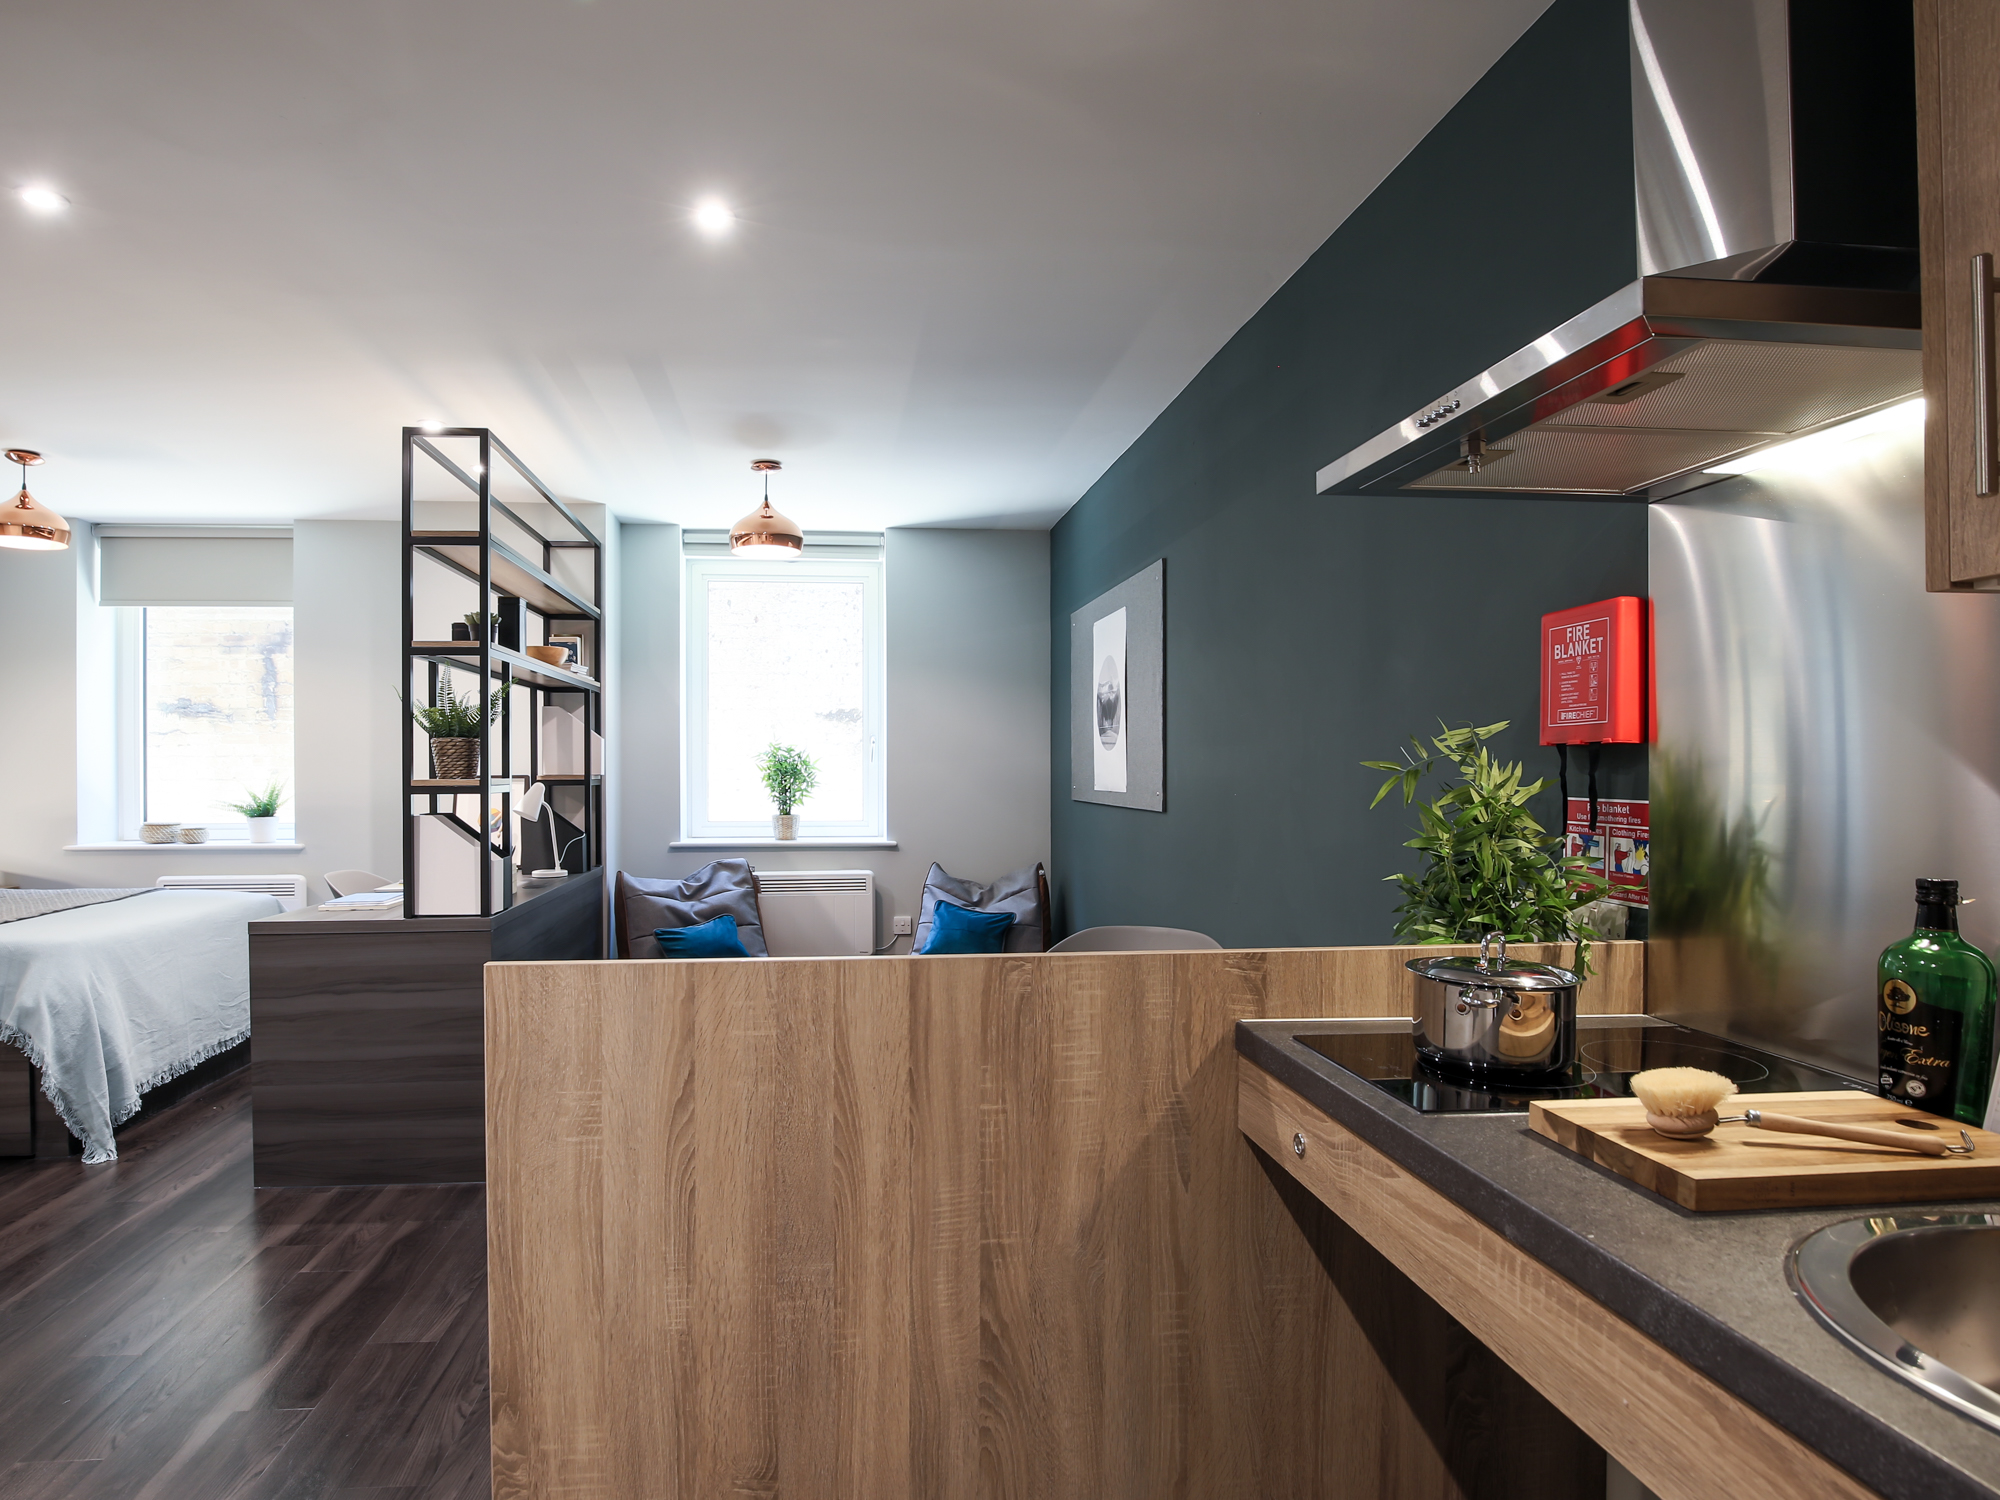 How to operate an Induction Hob | iQ Student Accommodation